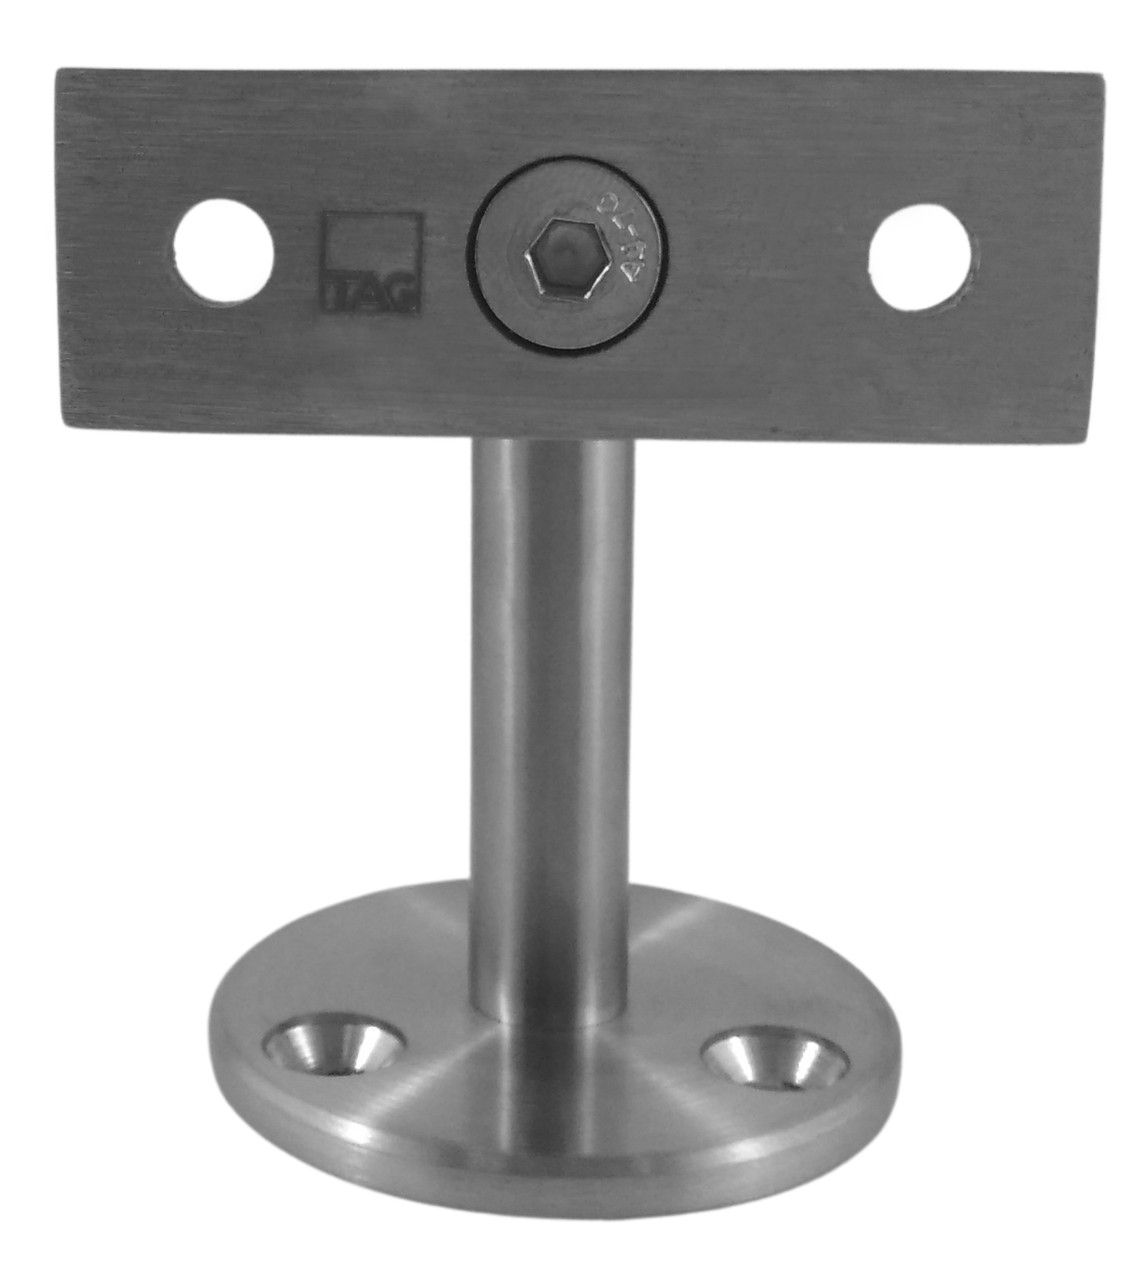 WB6LEDSOL60FBS WALL BRACKET FOR LED SOLID FIXED TYPE FOR CAPRAIL